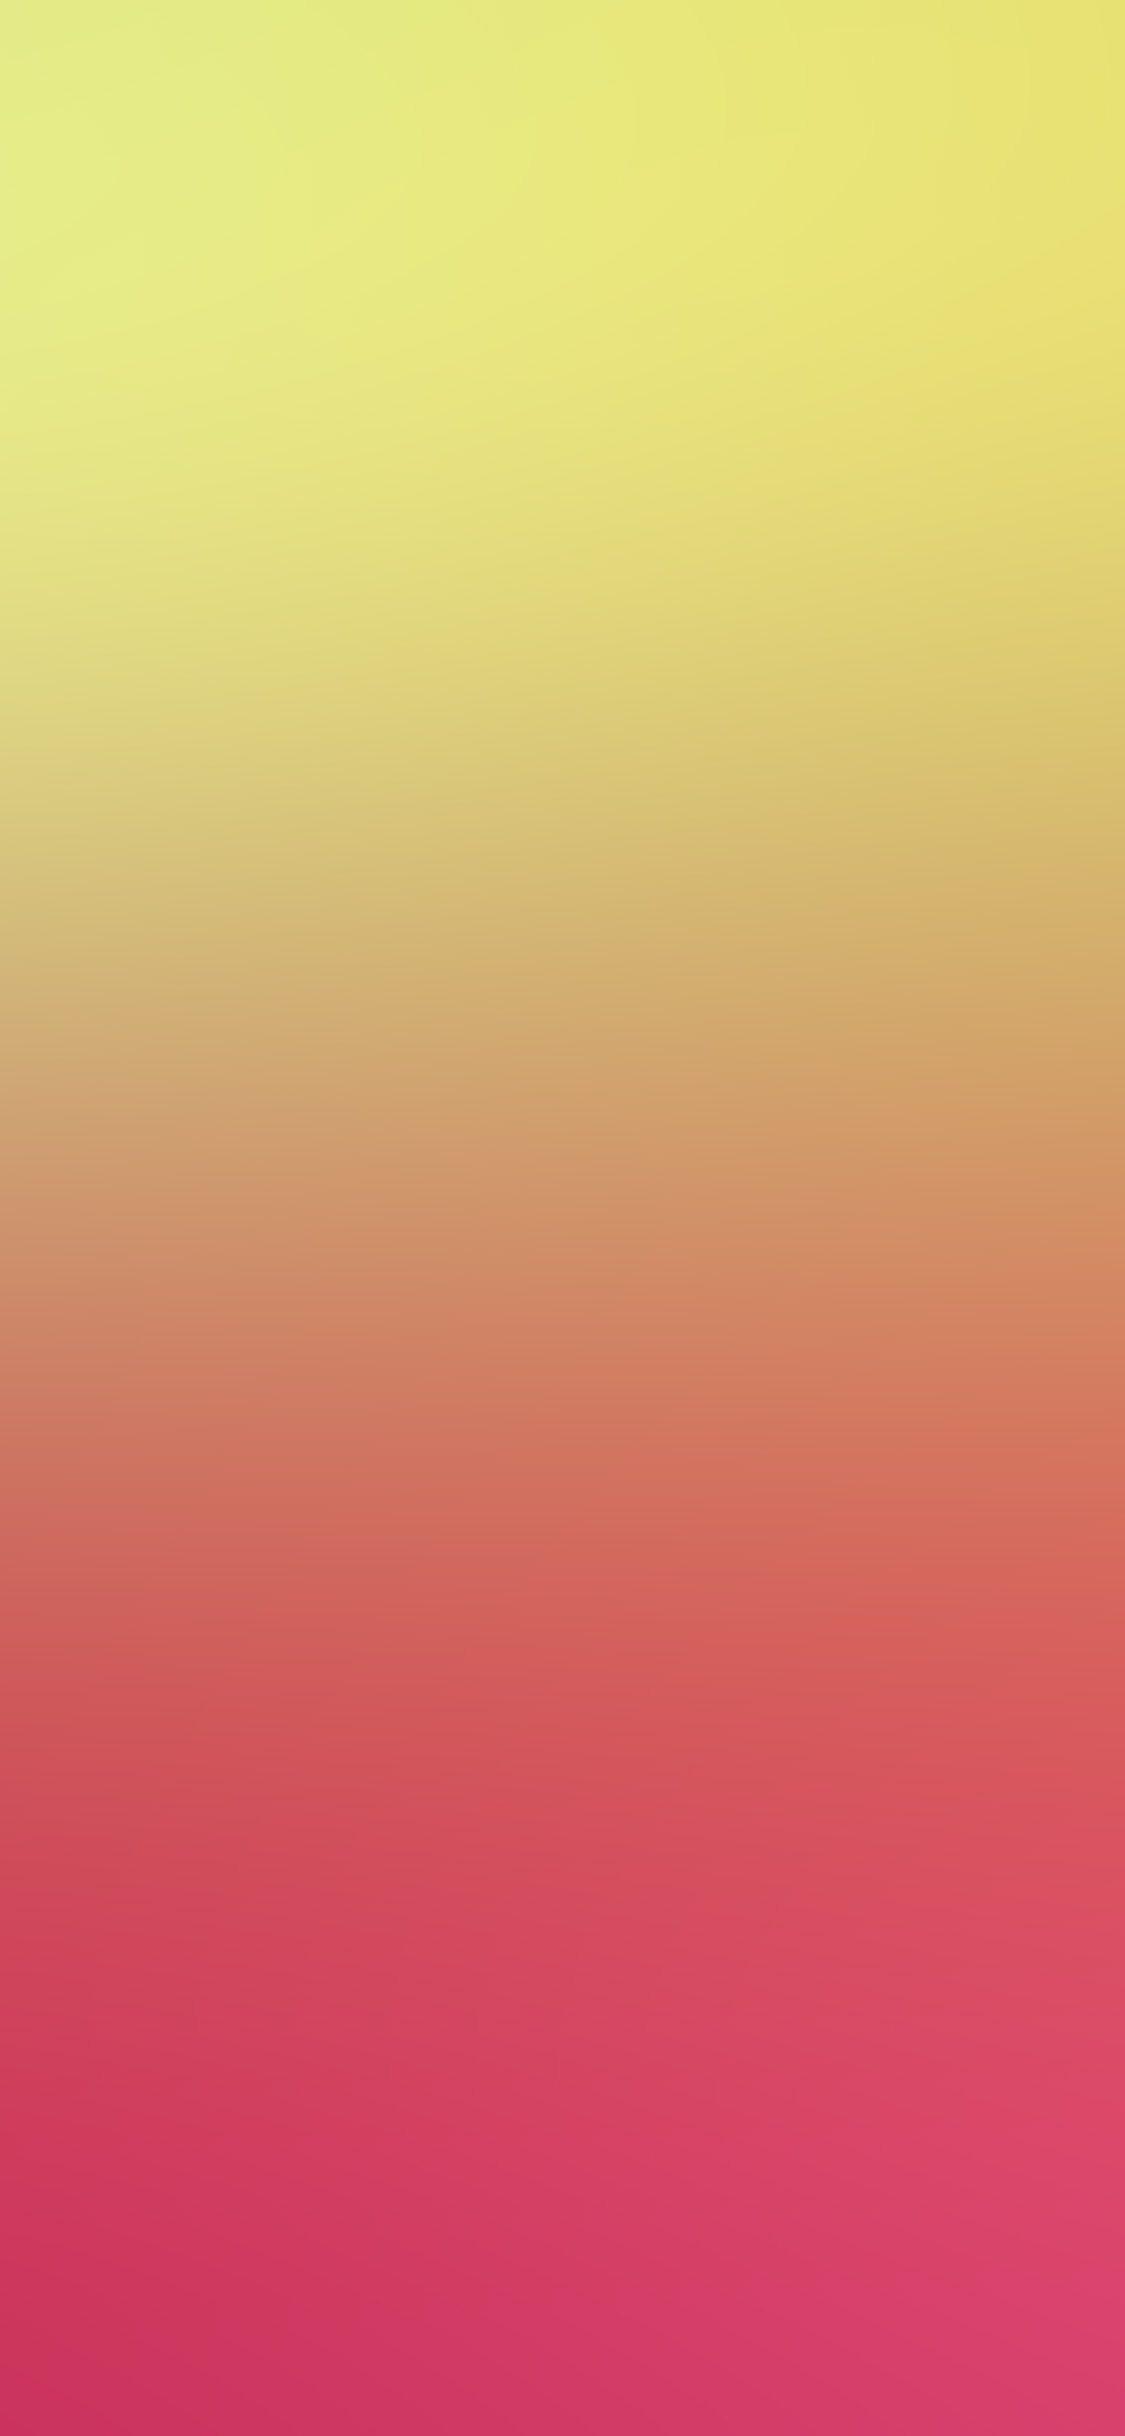 iPhonexpapers.com-Apple-iPhone-wallpaper-sn18-hot-sex-on-the-beach-blur-gradation-red